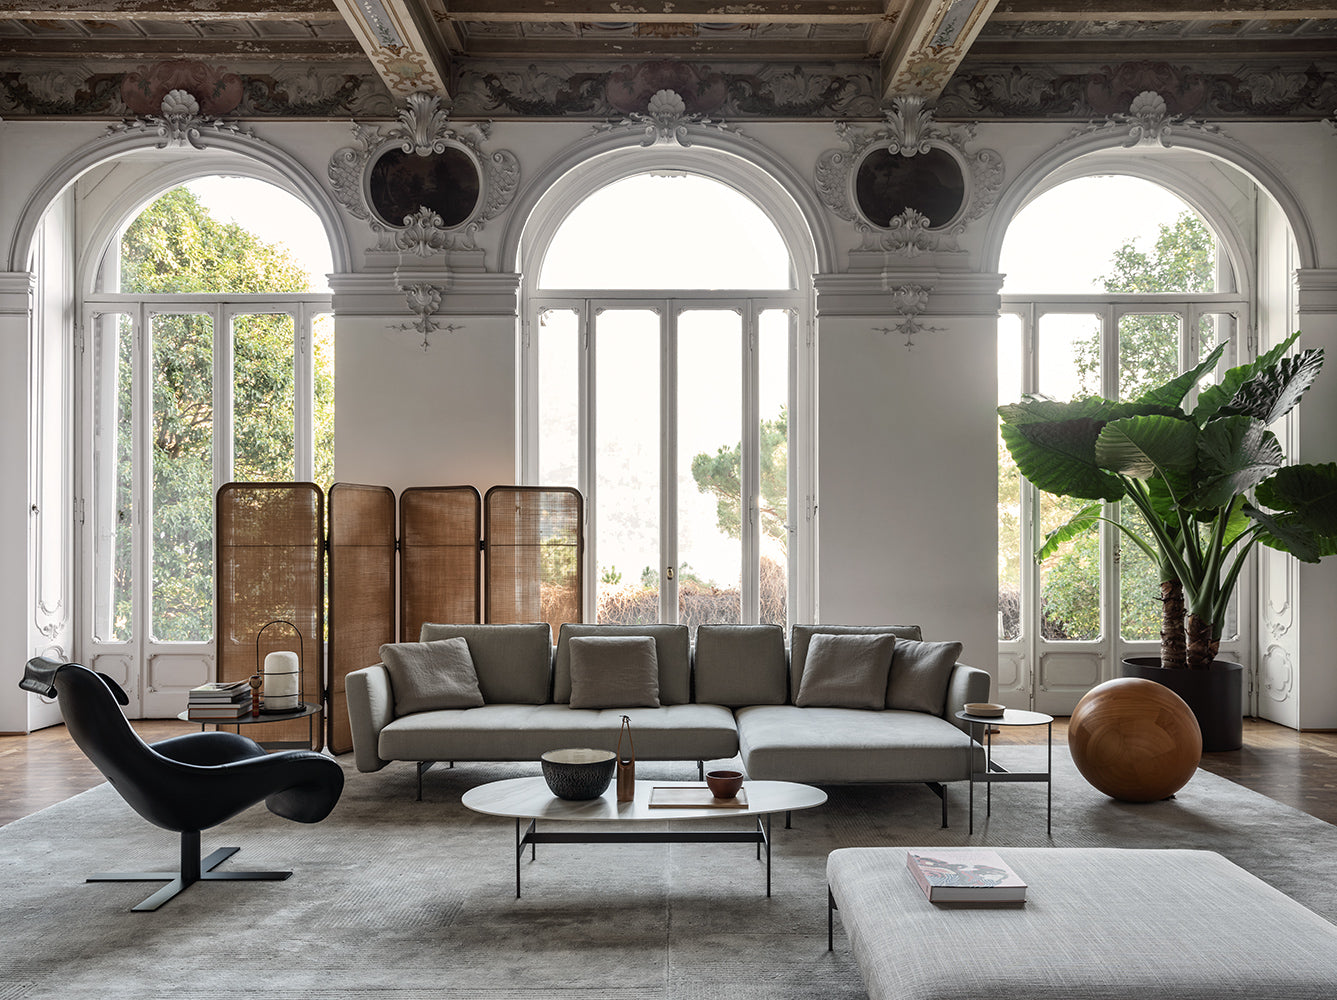 b&b italia sofa piero lissoni